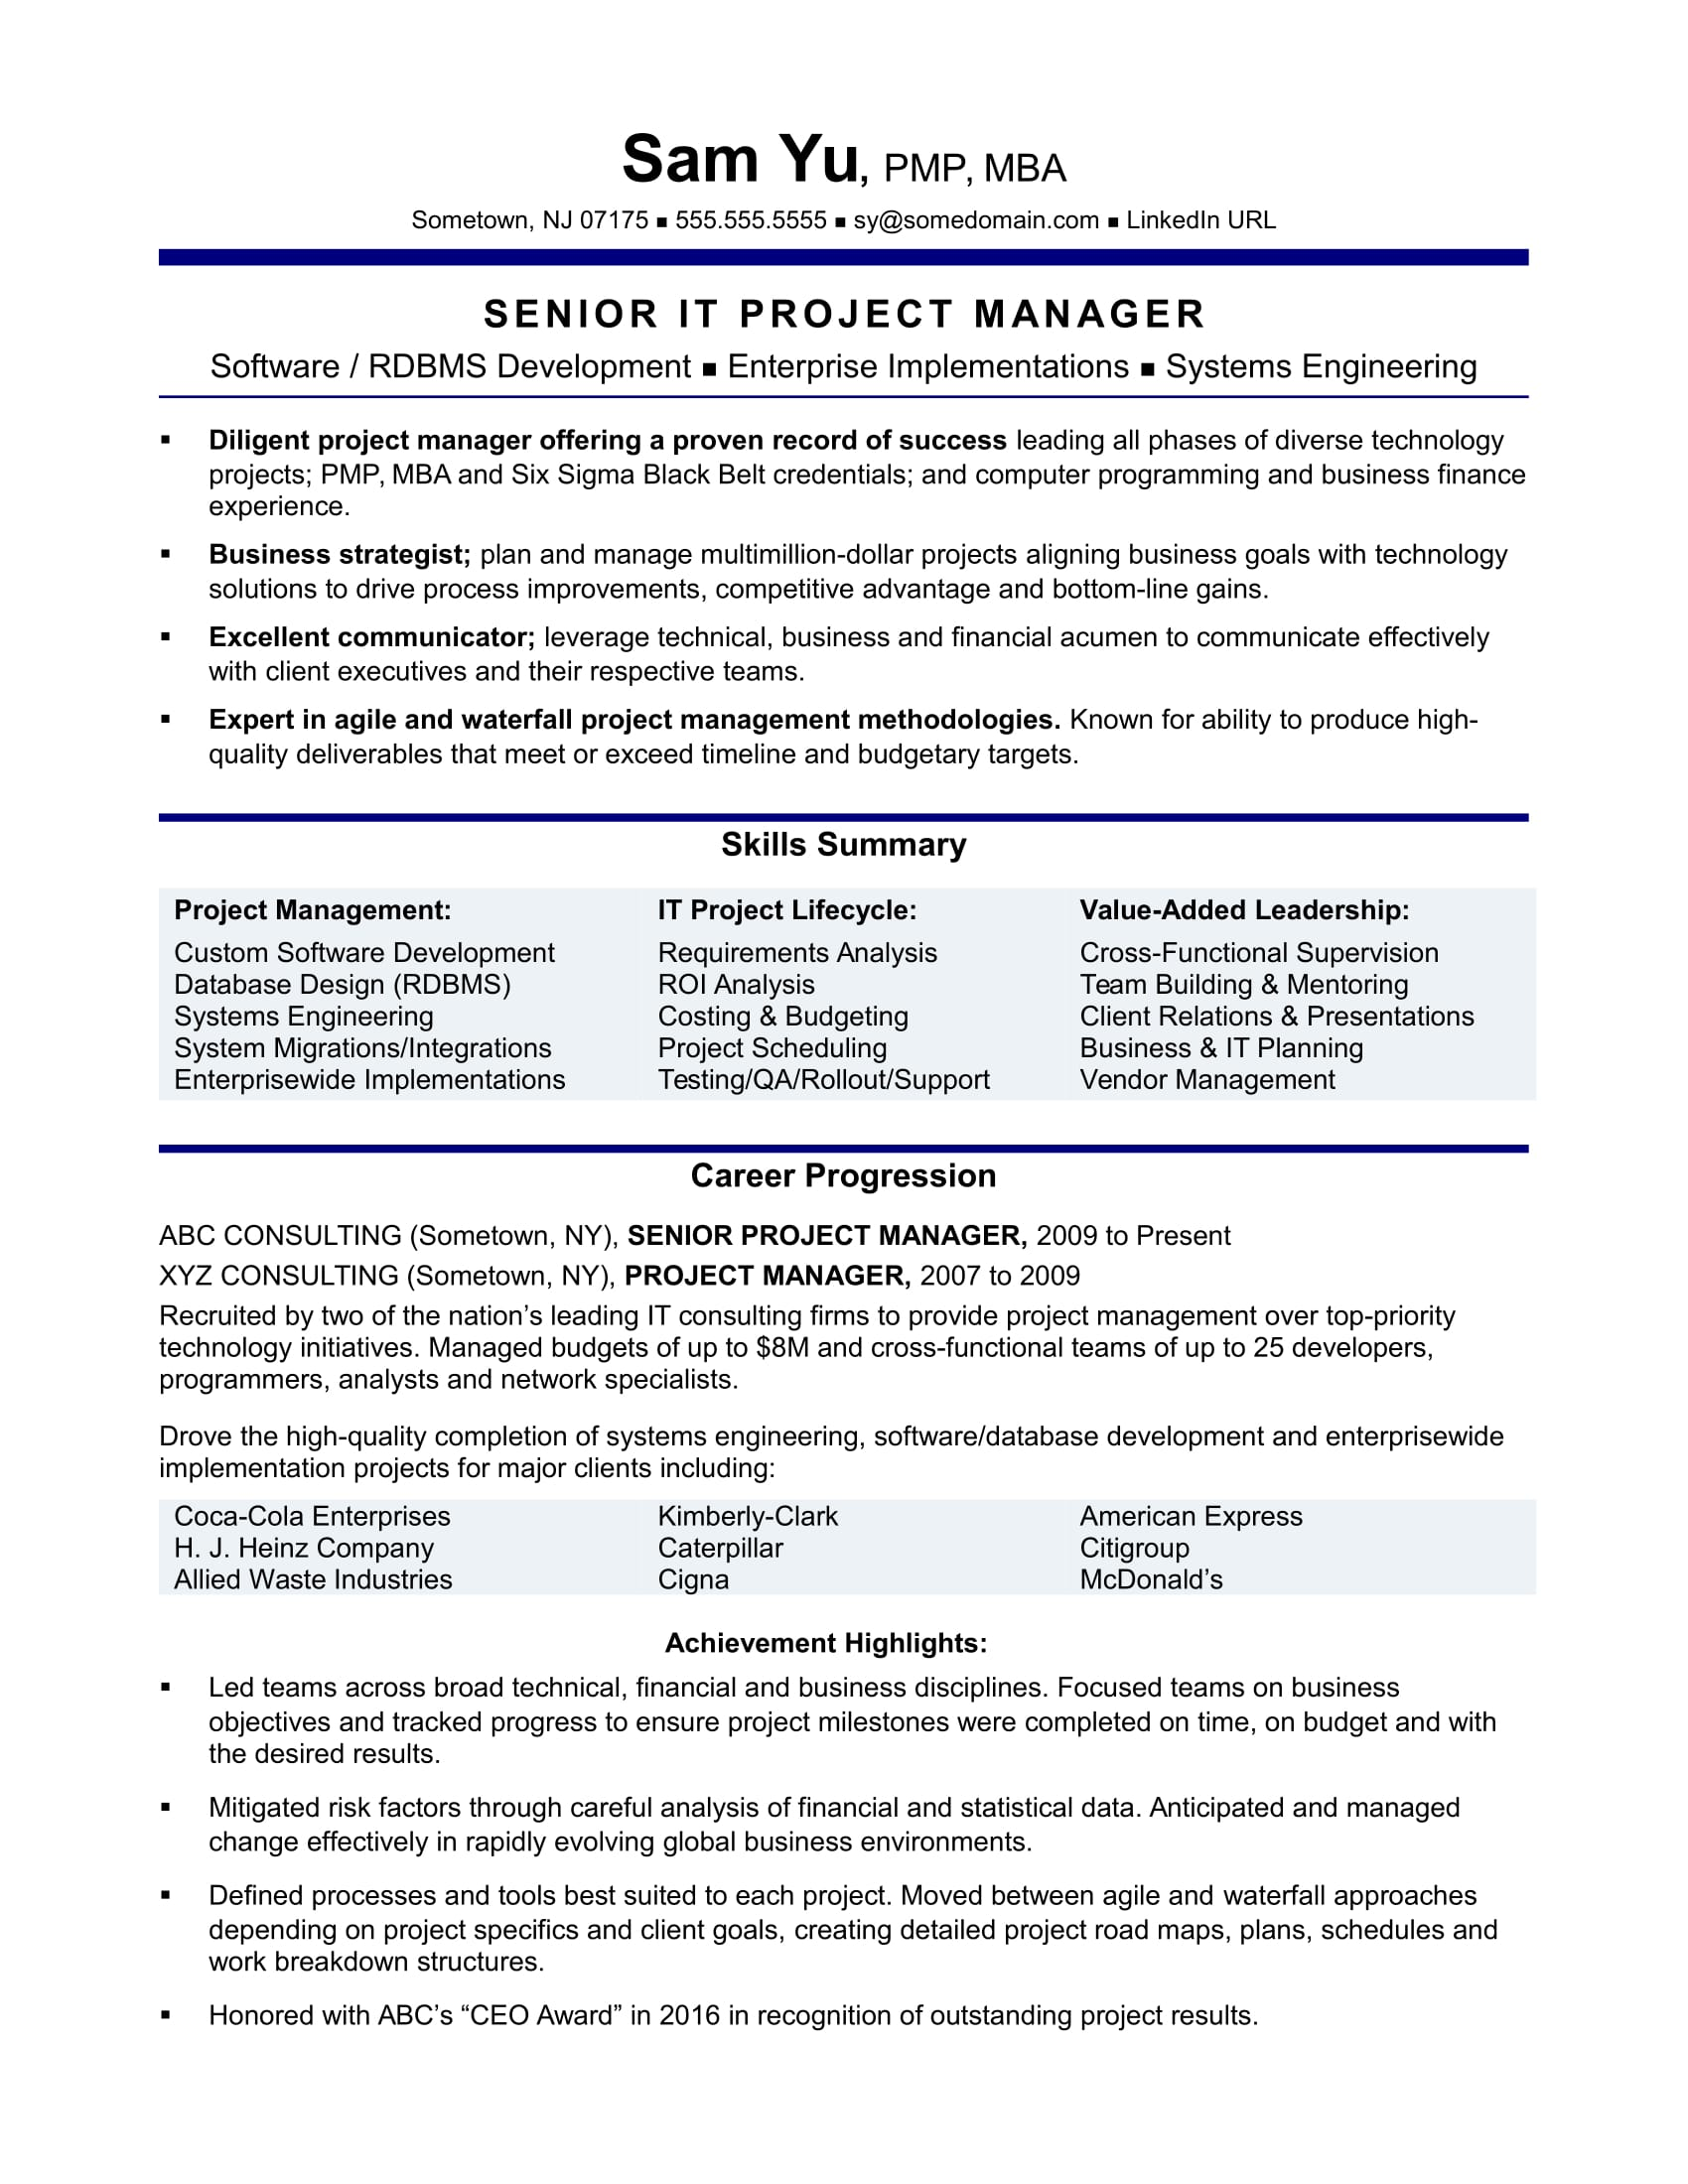 Experienced it project manager resume sample monster experienced it project manager resume sample yelopaper Image collections